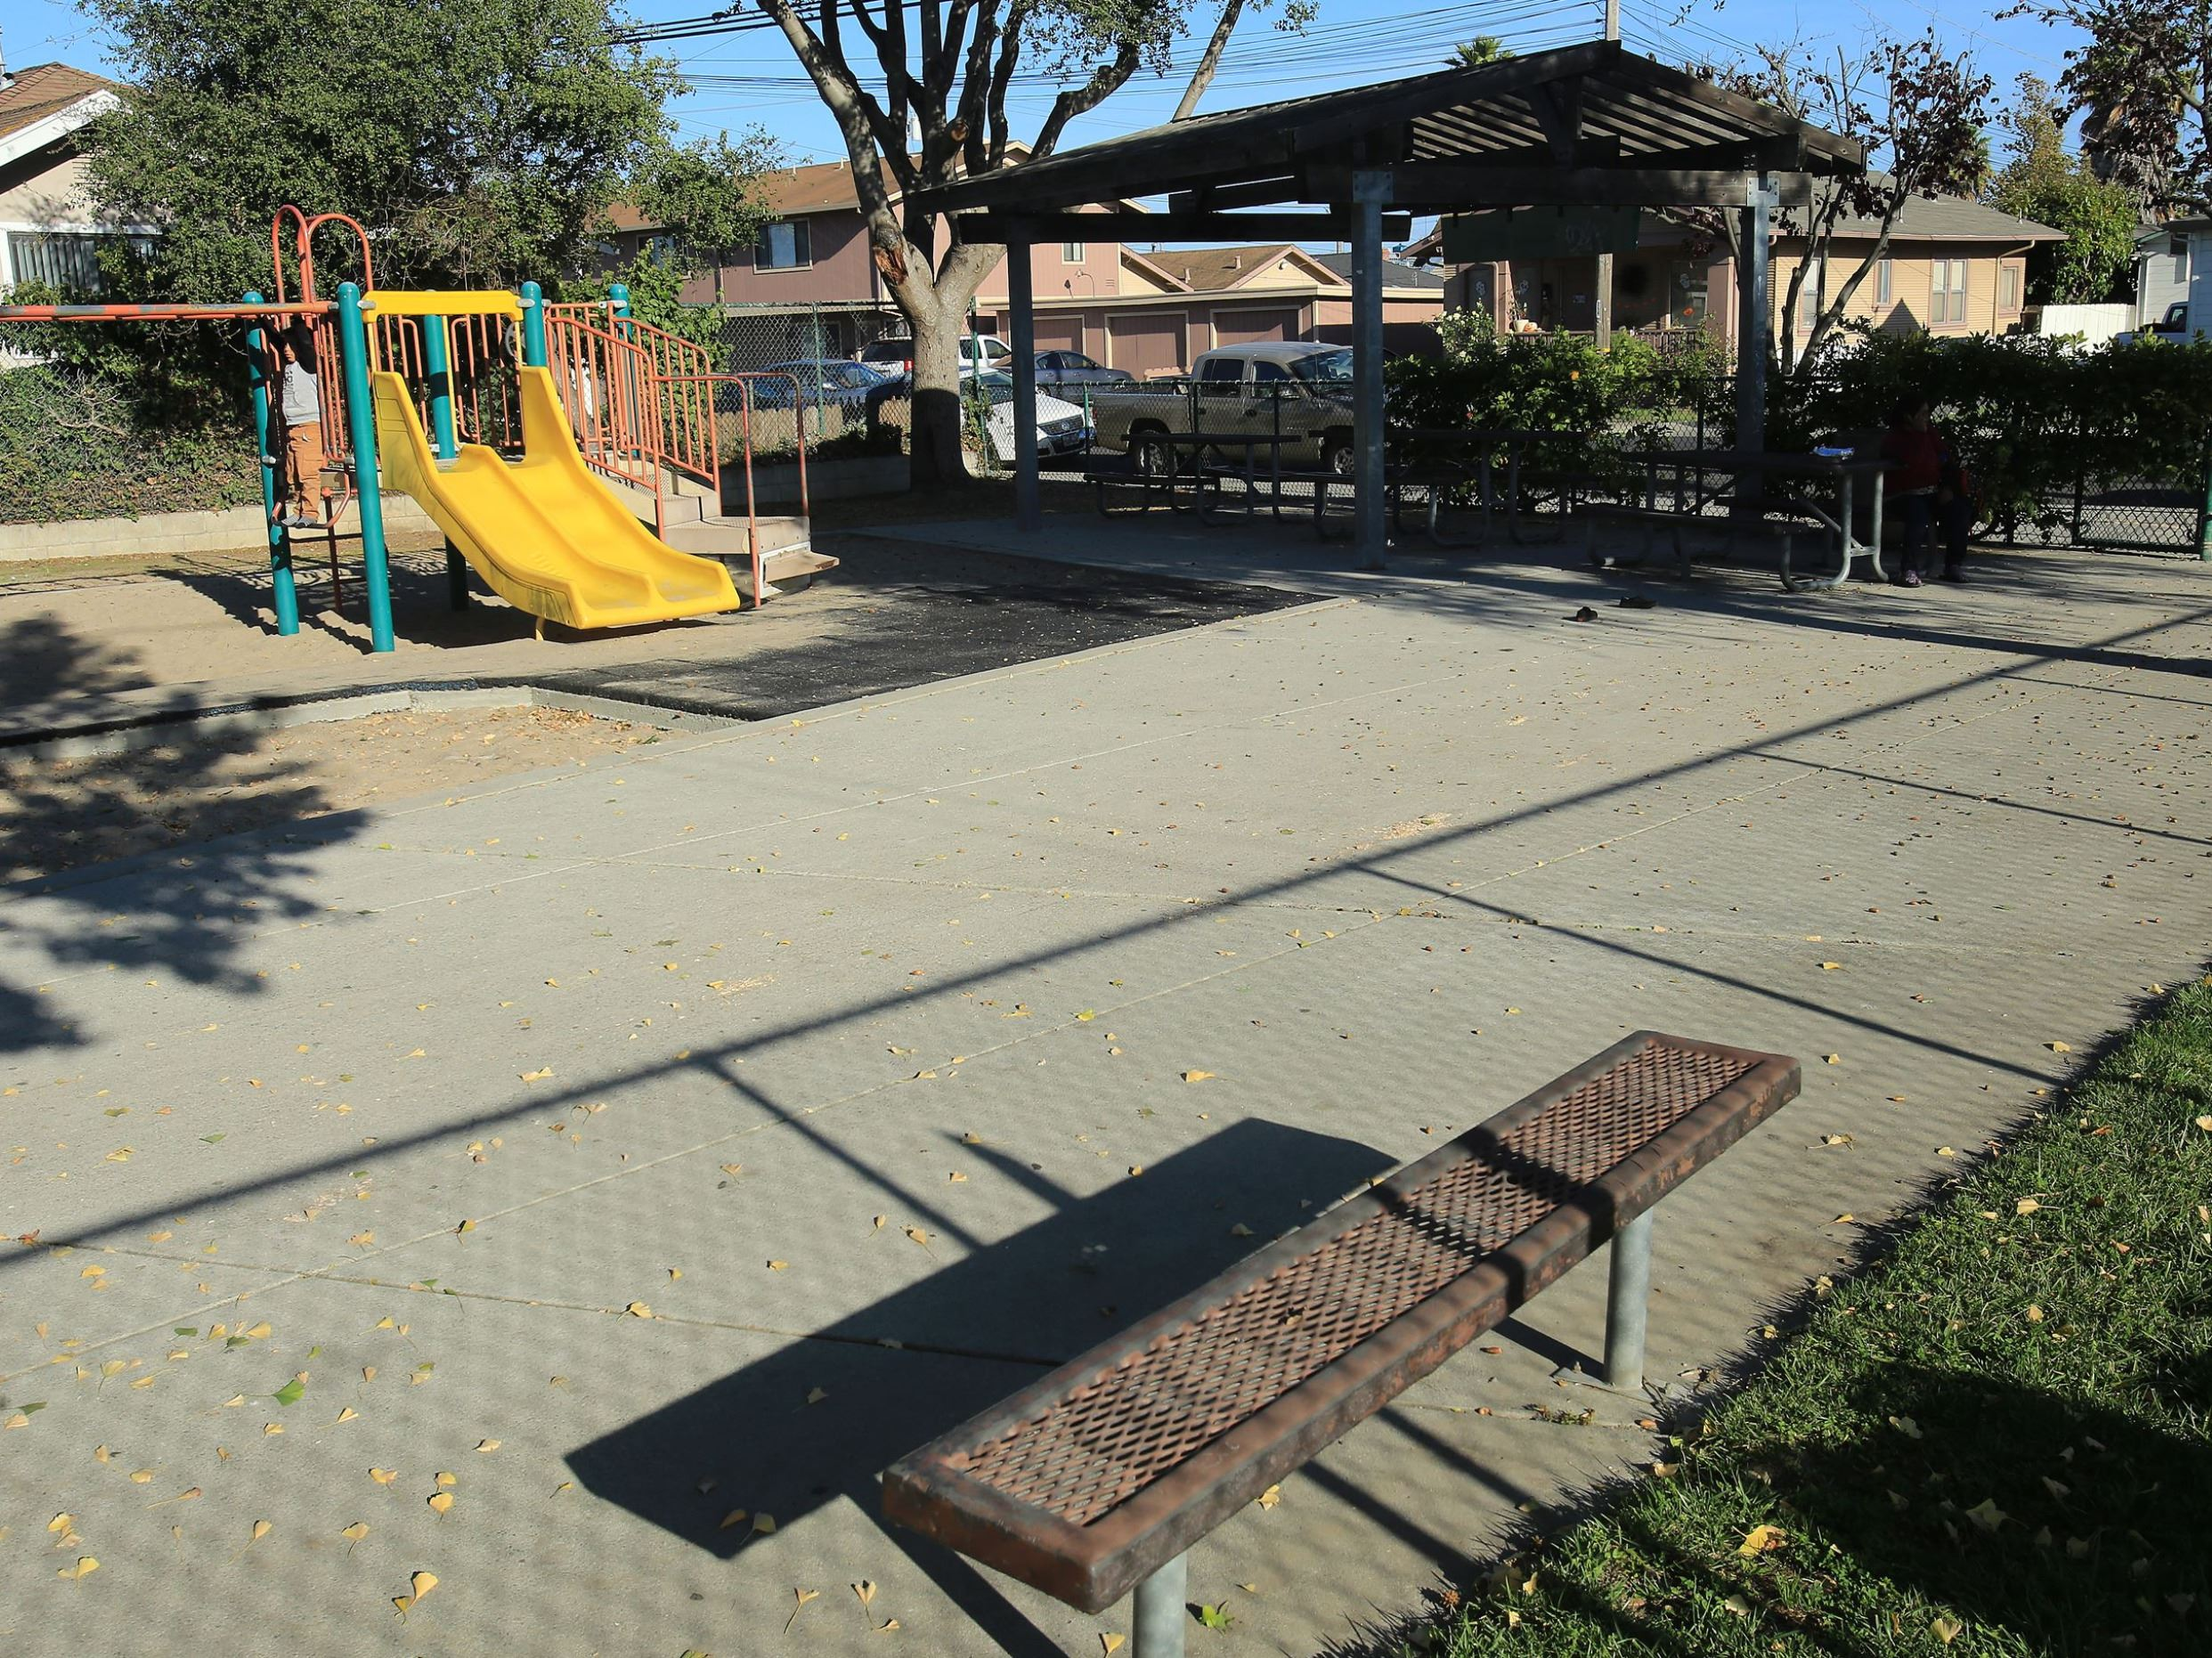 Kearney park playground structure and covered picnic area